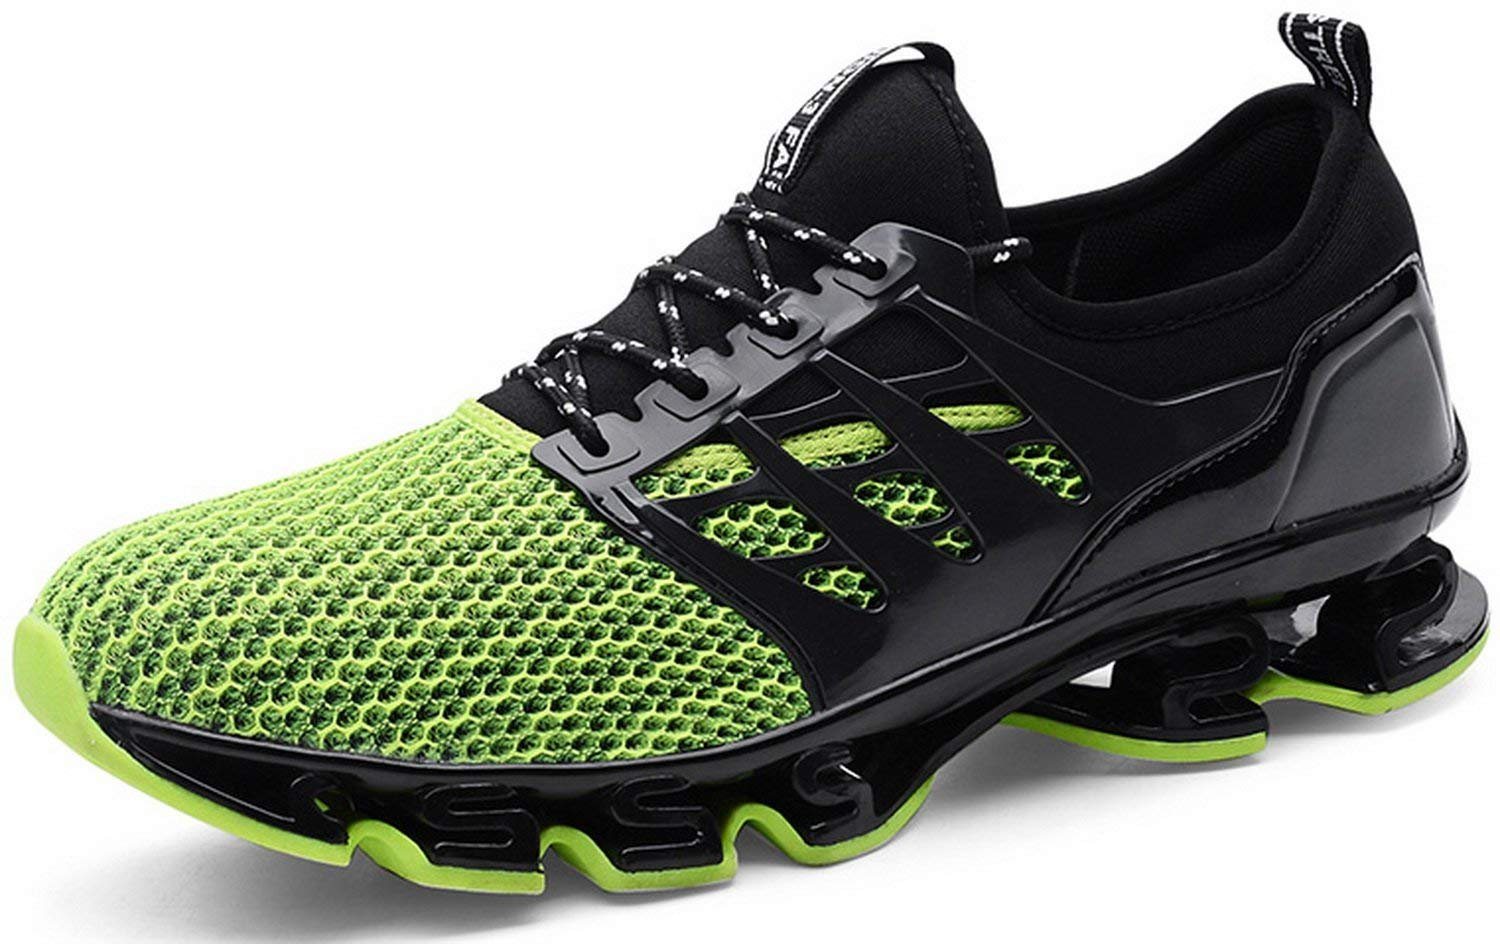 Running Shoes Men Mesh Casual Slip on Breathable Walking Stylish Sneakers Athletic Springblade